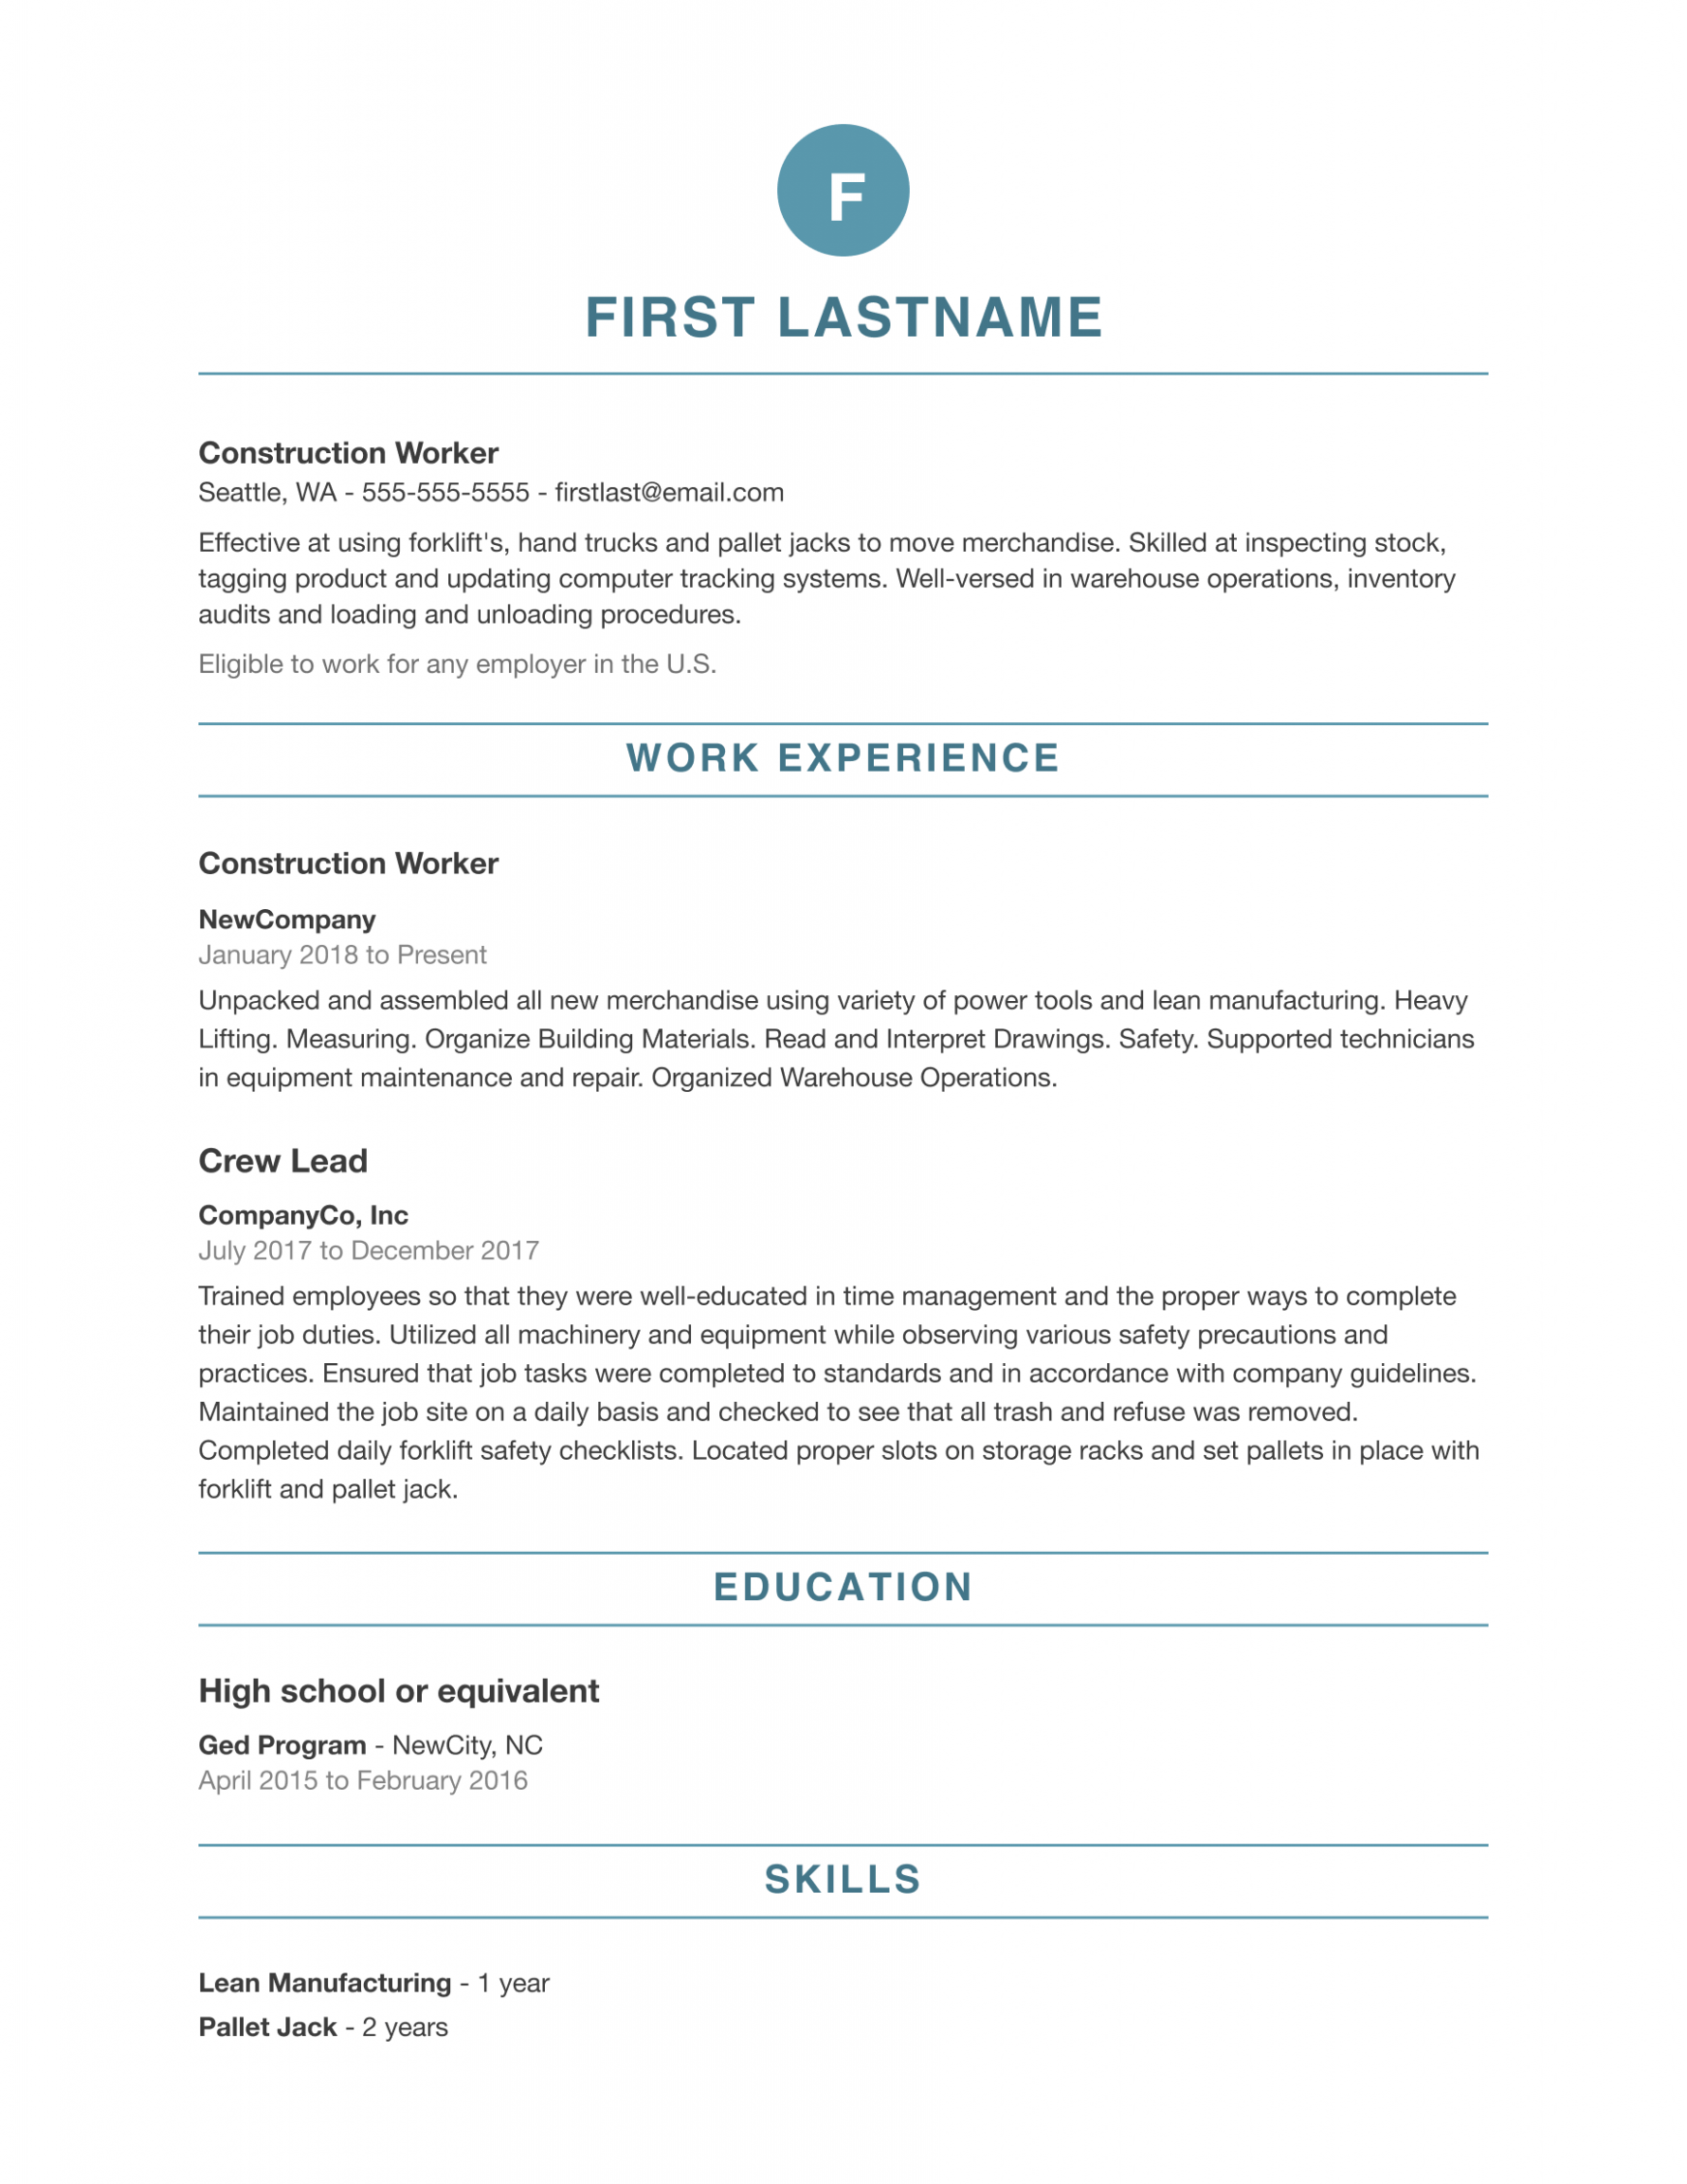 10 Skilled Resume Format in 2020 Free resume template